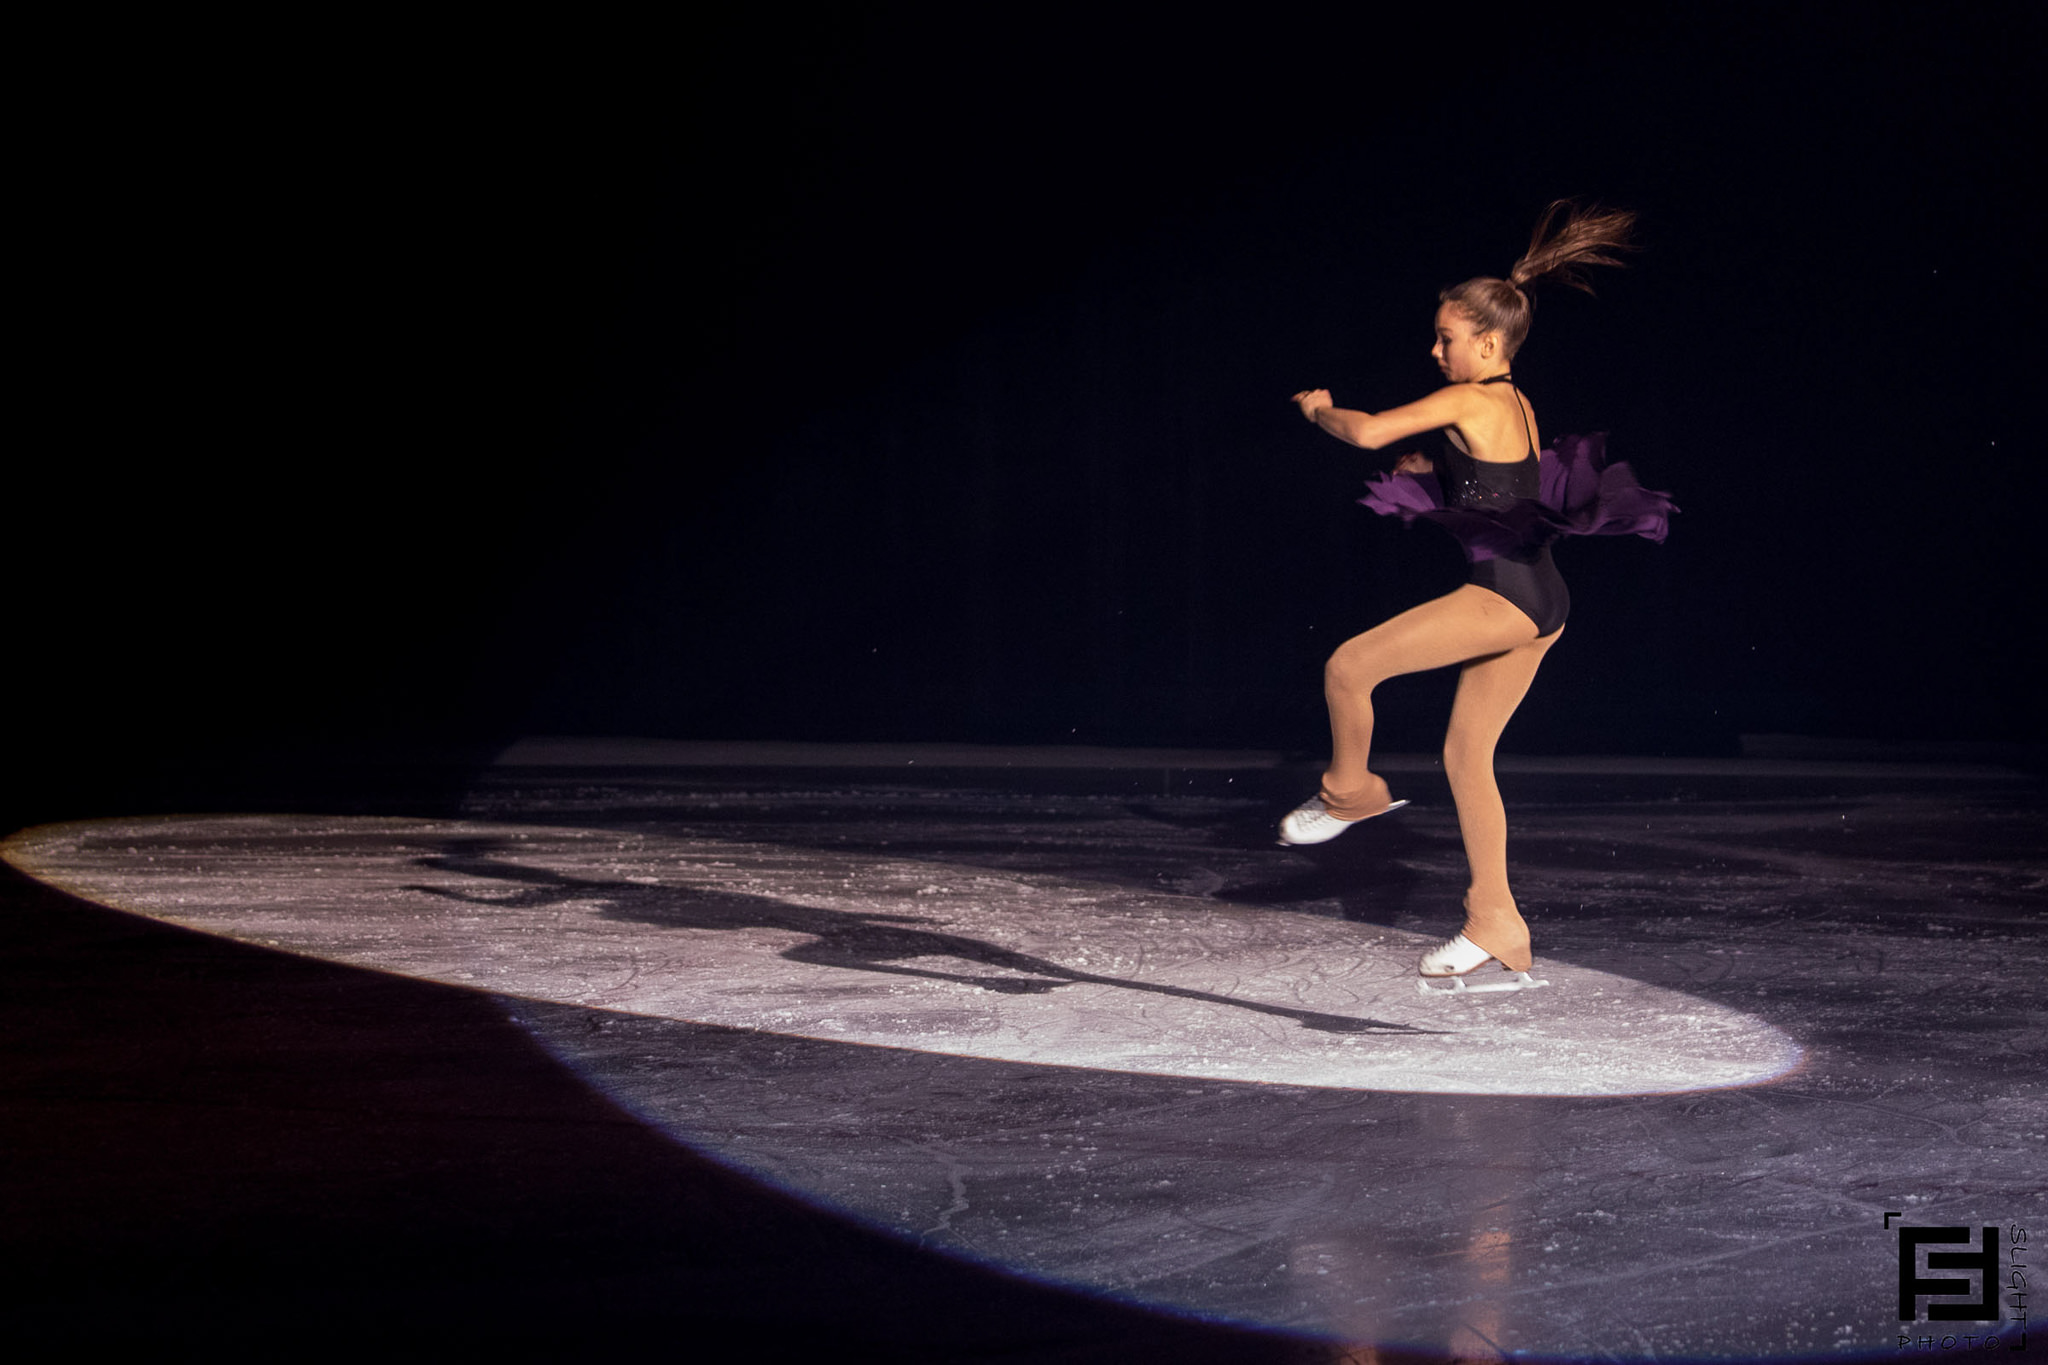 How to Photograph Figure Skating